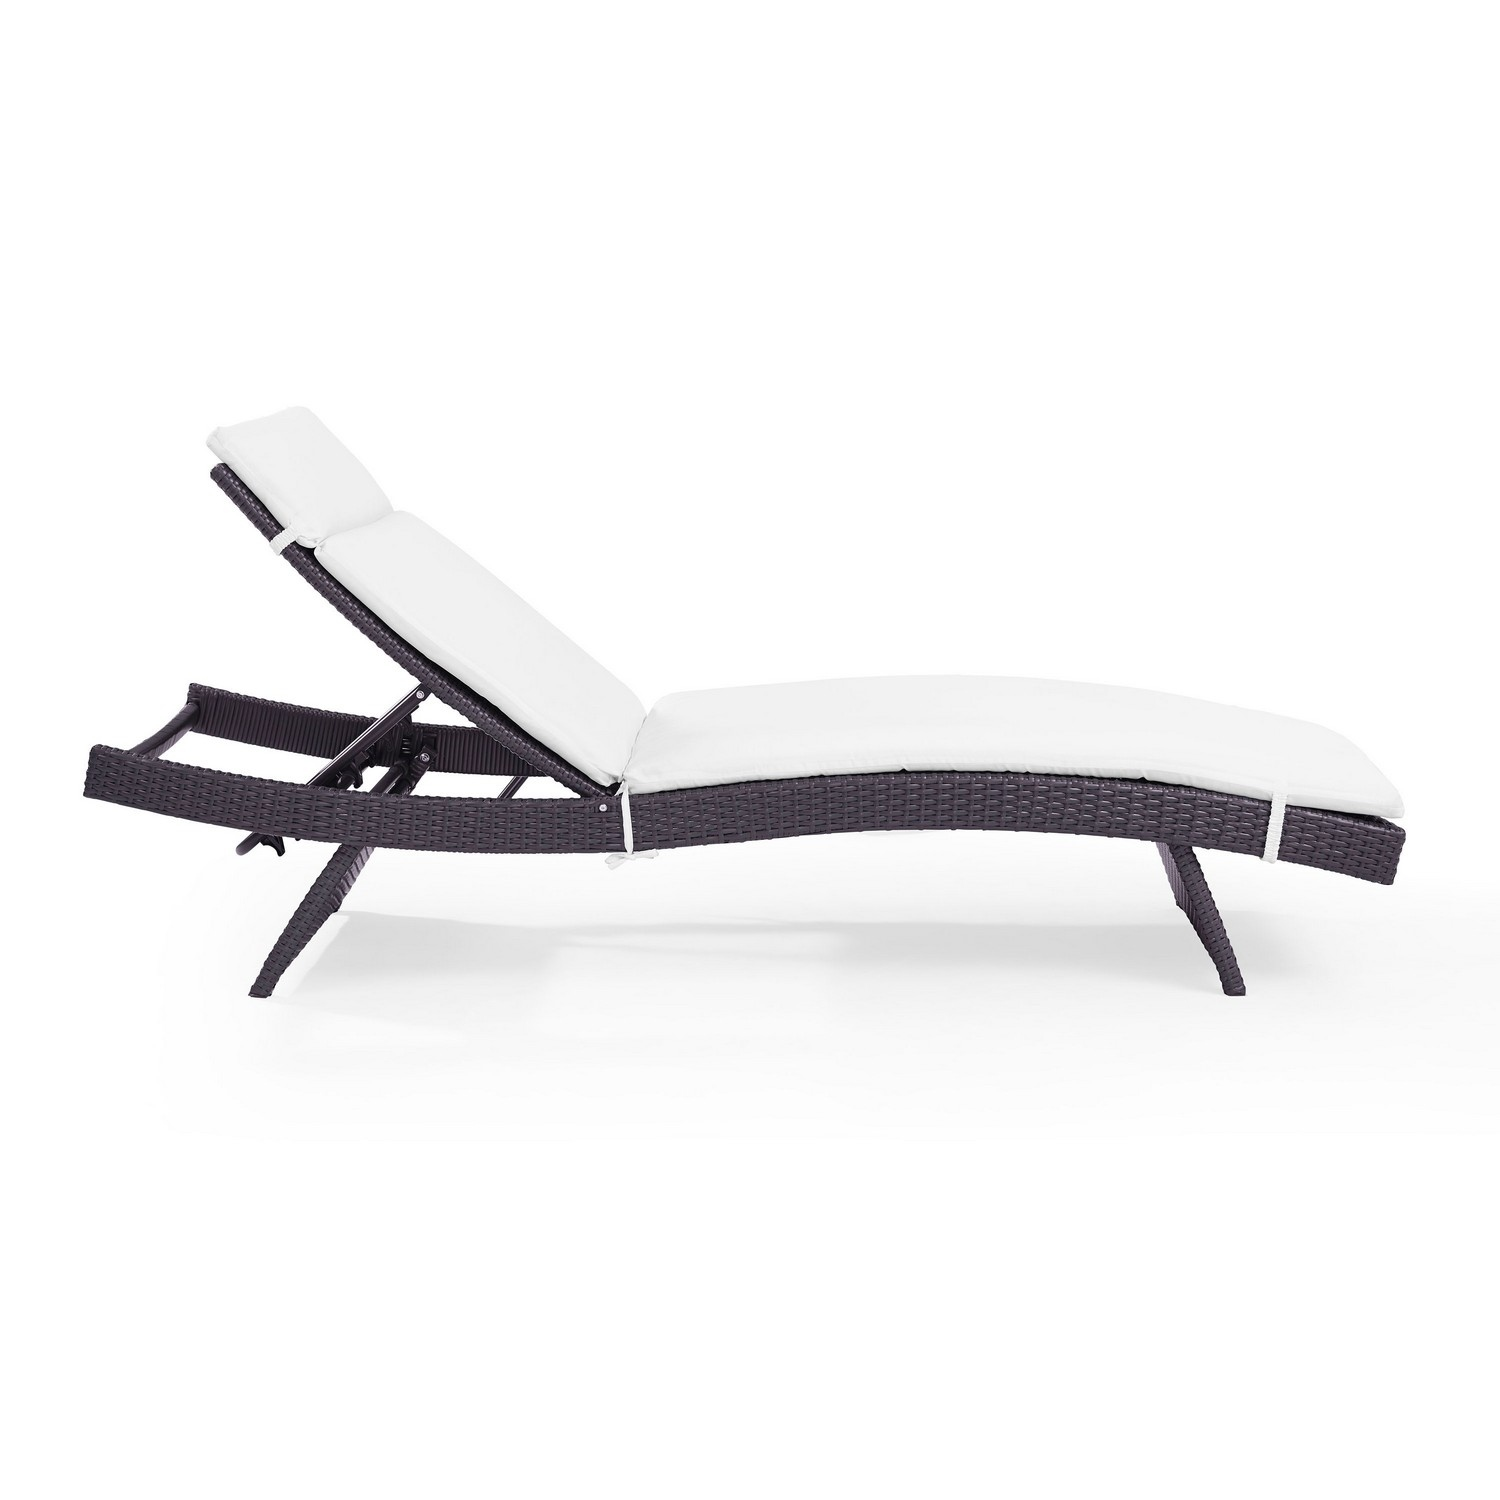 Crosley Biscayne Outdoor Wicker Chaise Lounge - White/Brown